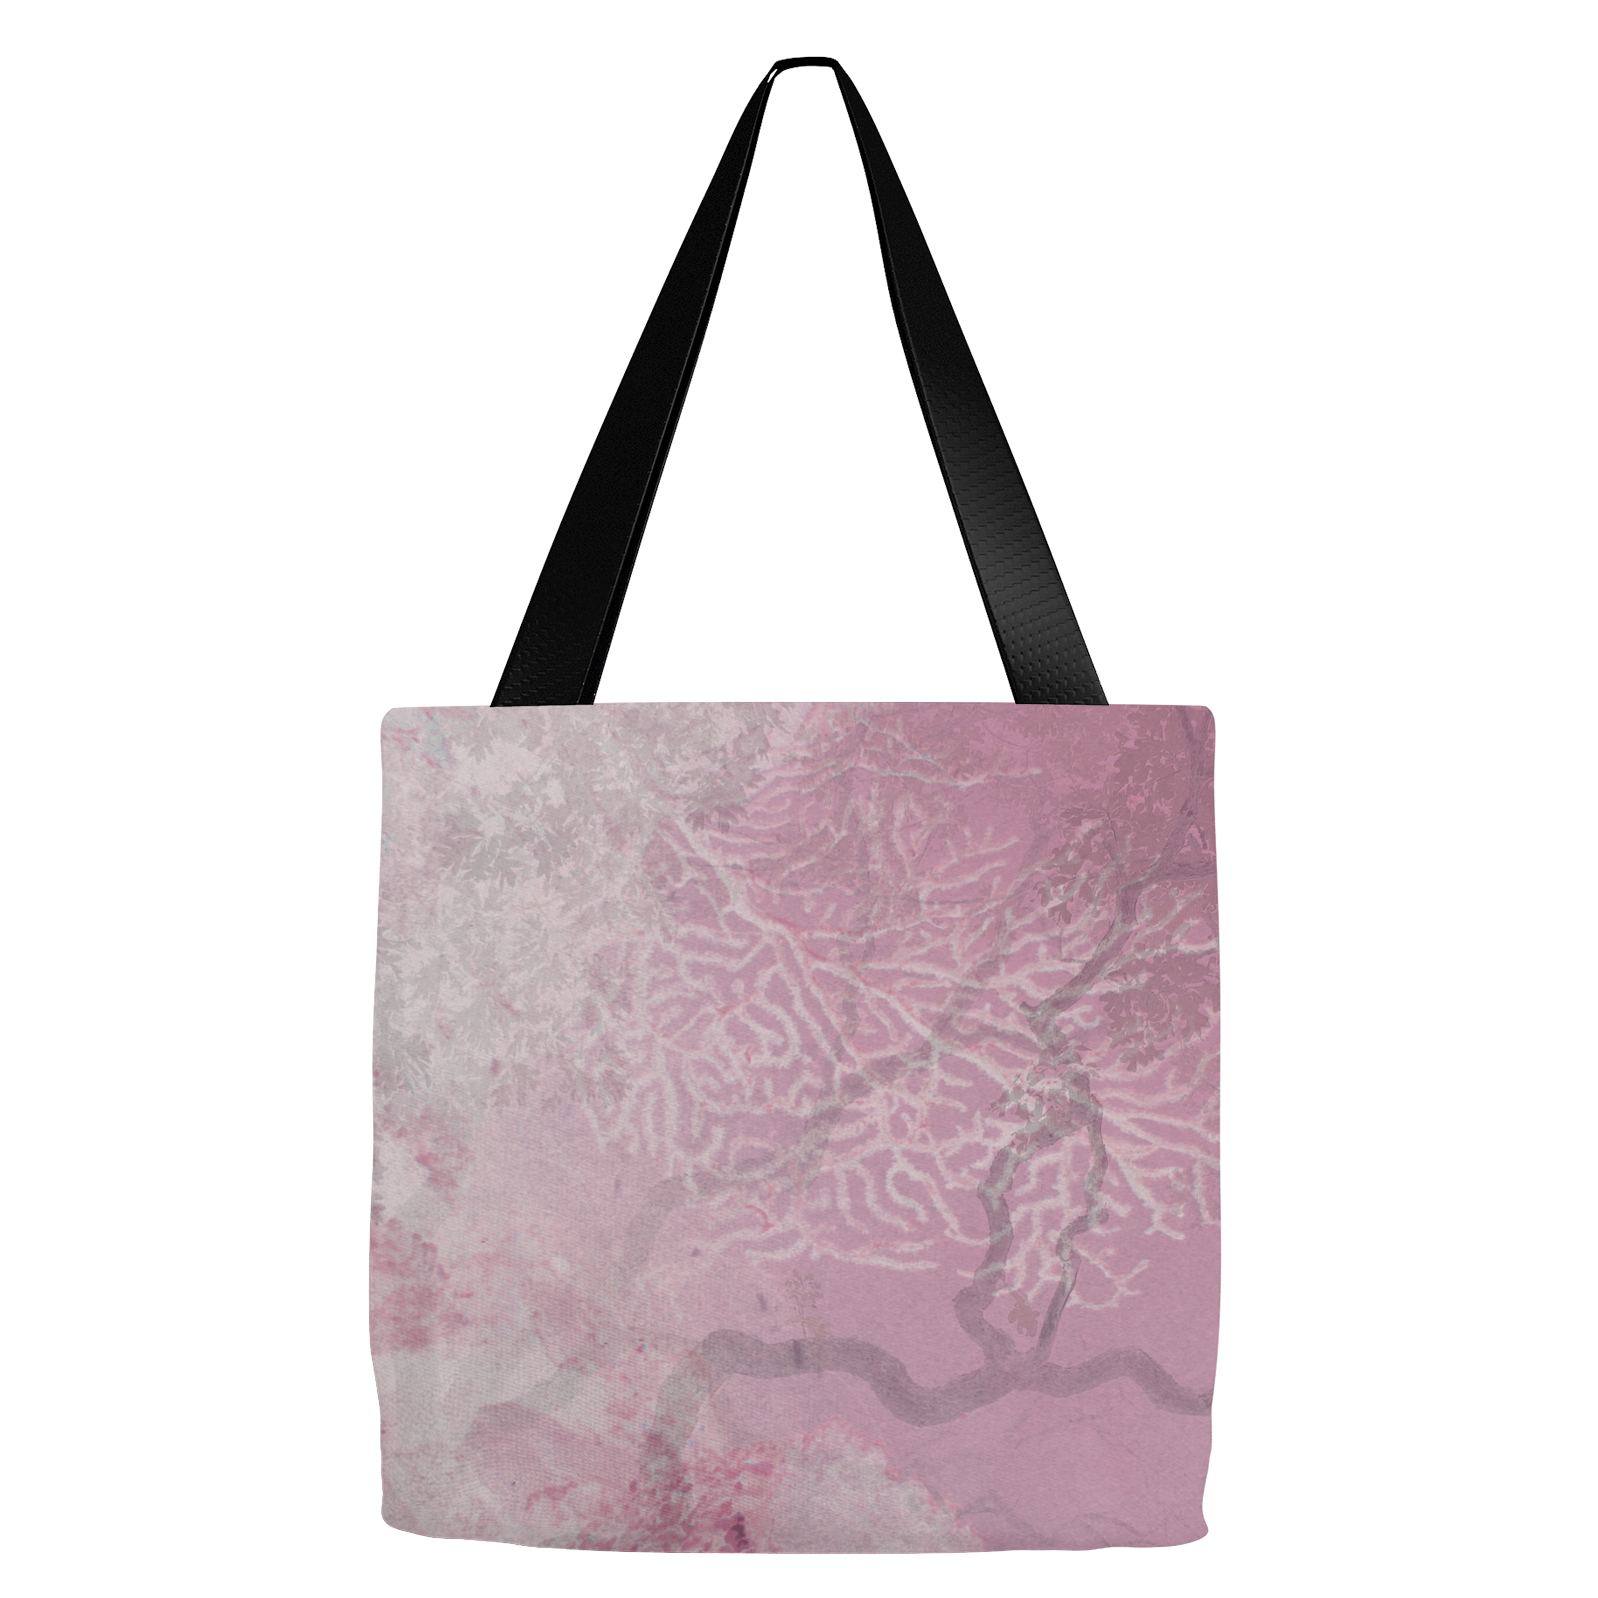 Coral Branches Rose Tote Bag